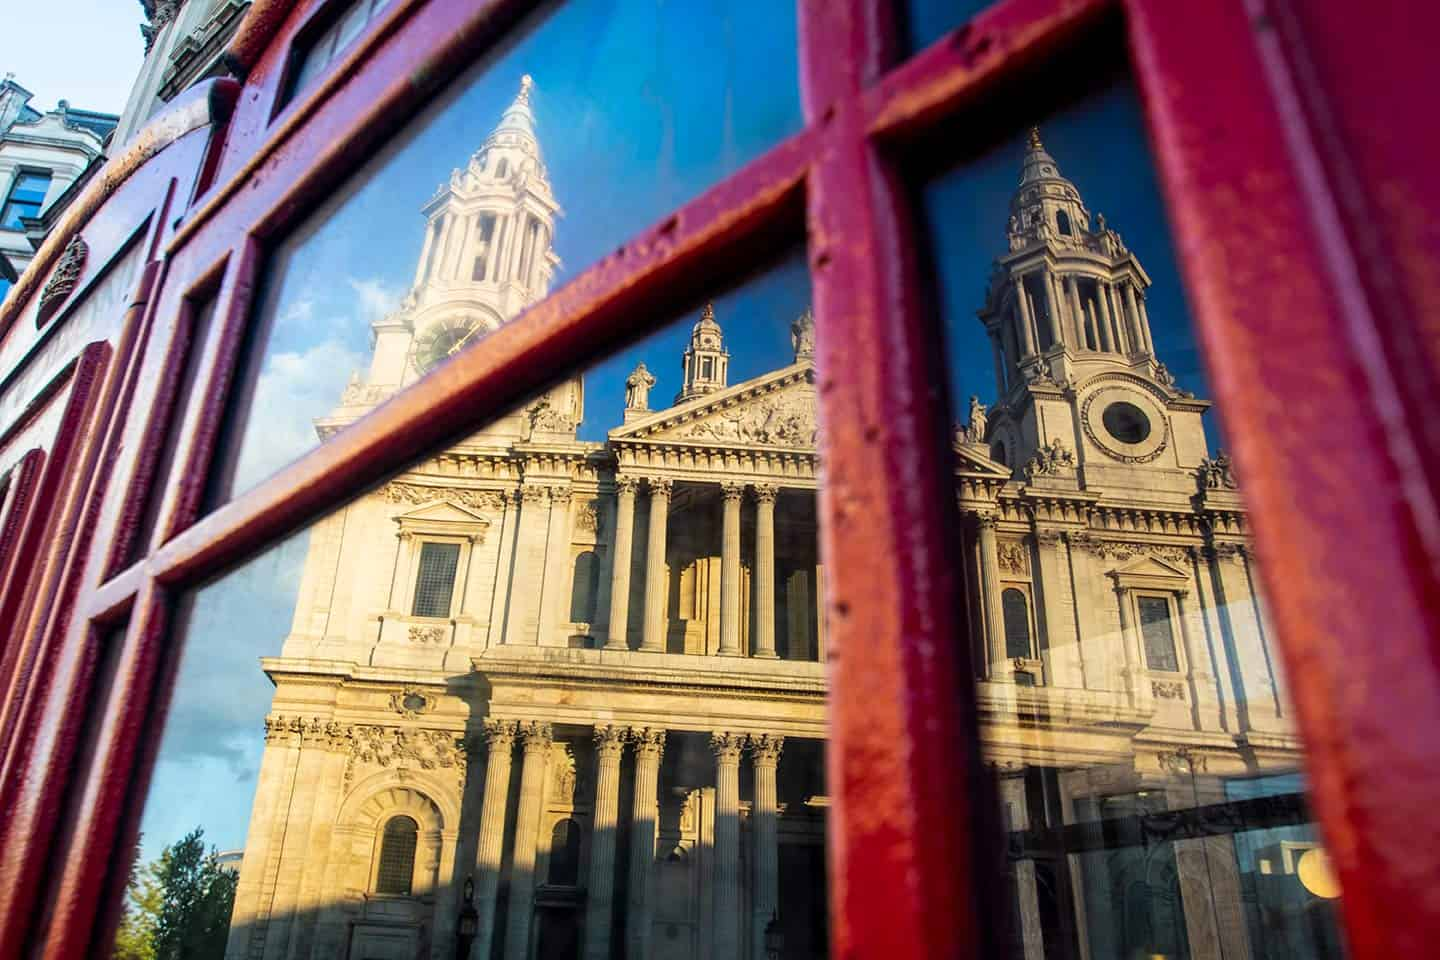 Image of St Paul's Cathedral reflected in a red telephone box